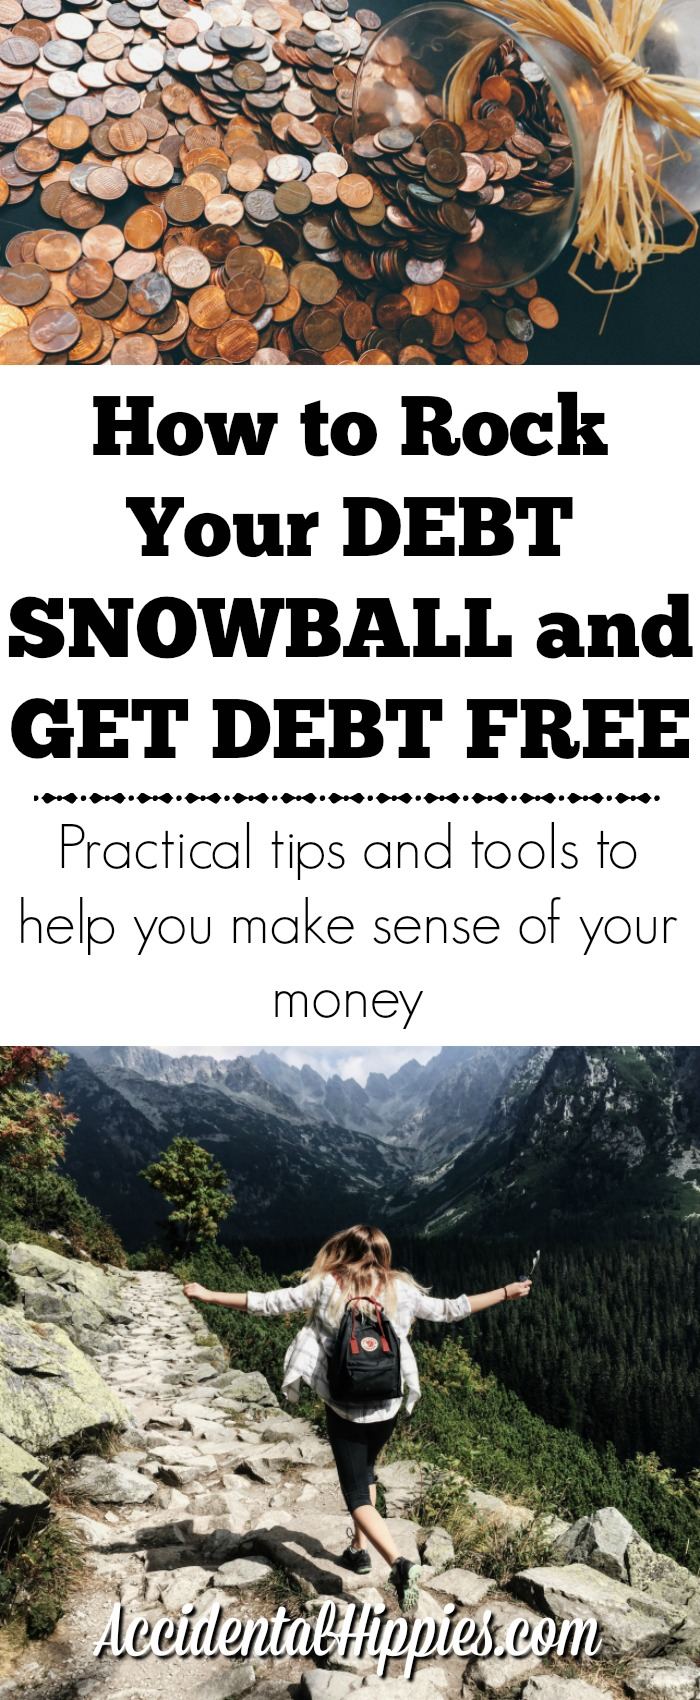 how to get debt free on your own